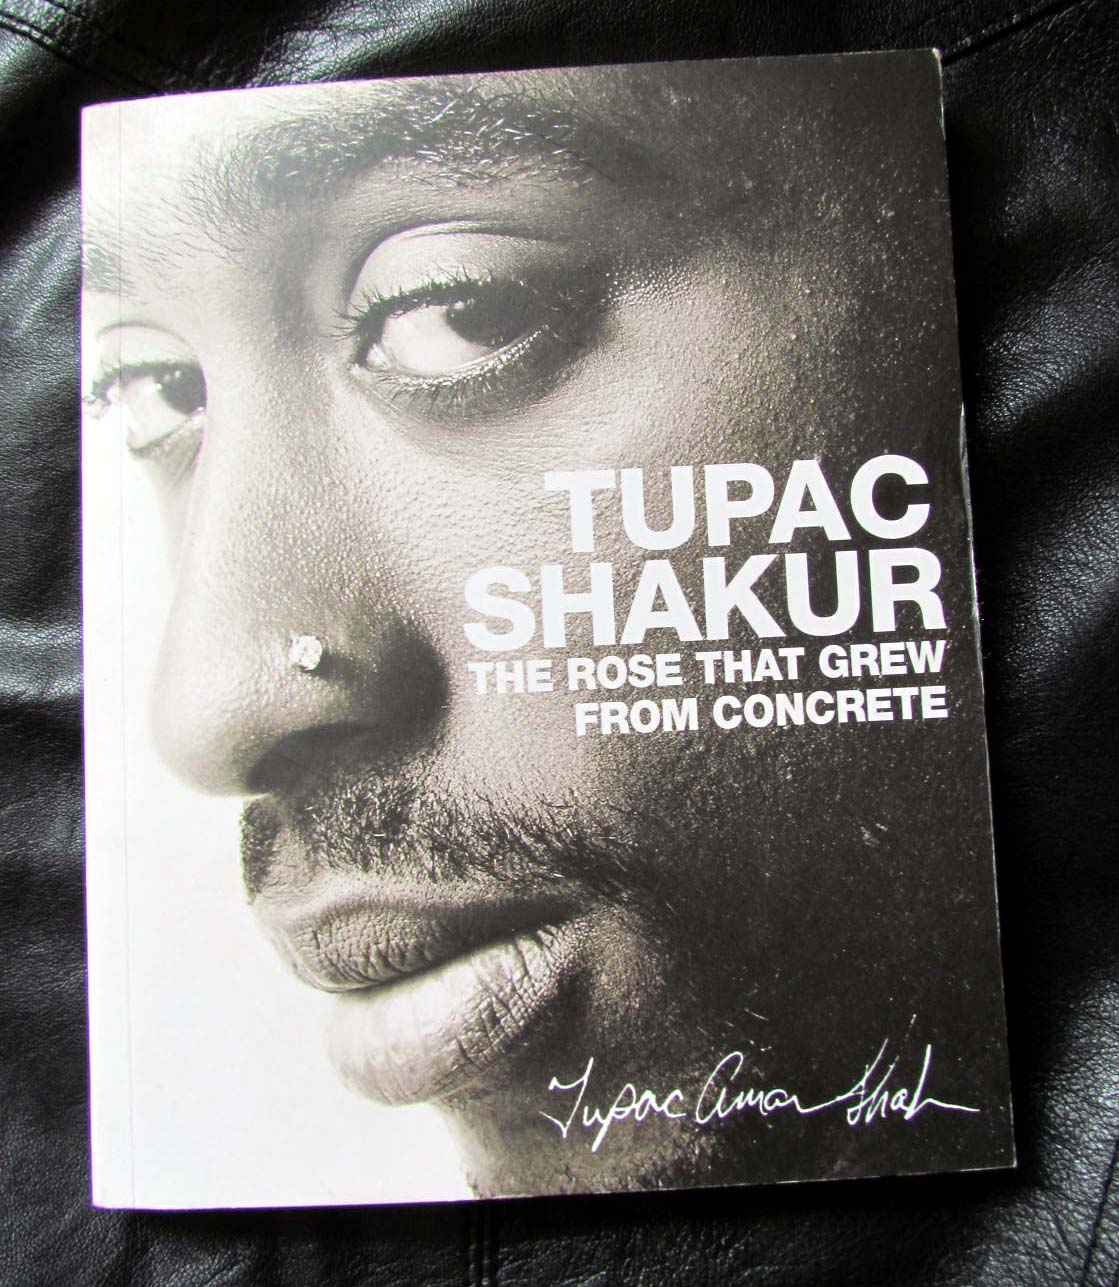 Tupac Shakur, study, poetry, leather, The Rose That Grew From Concrete,